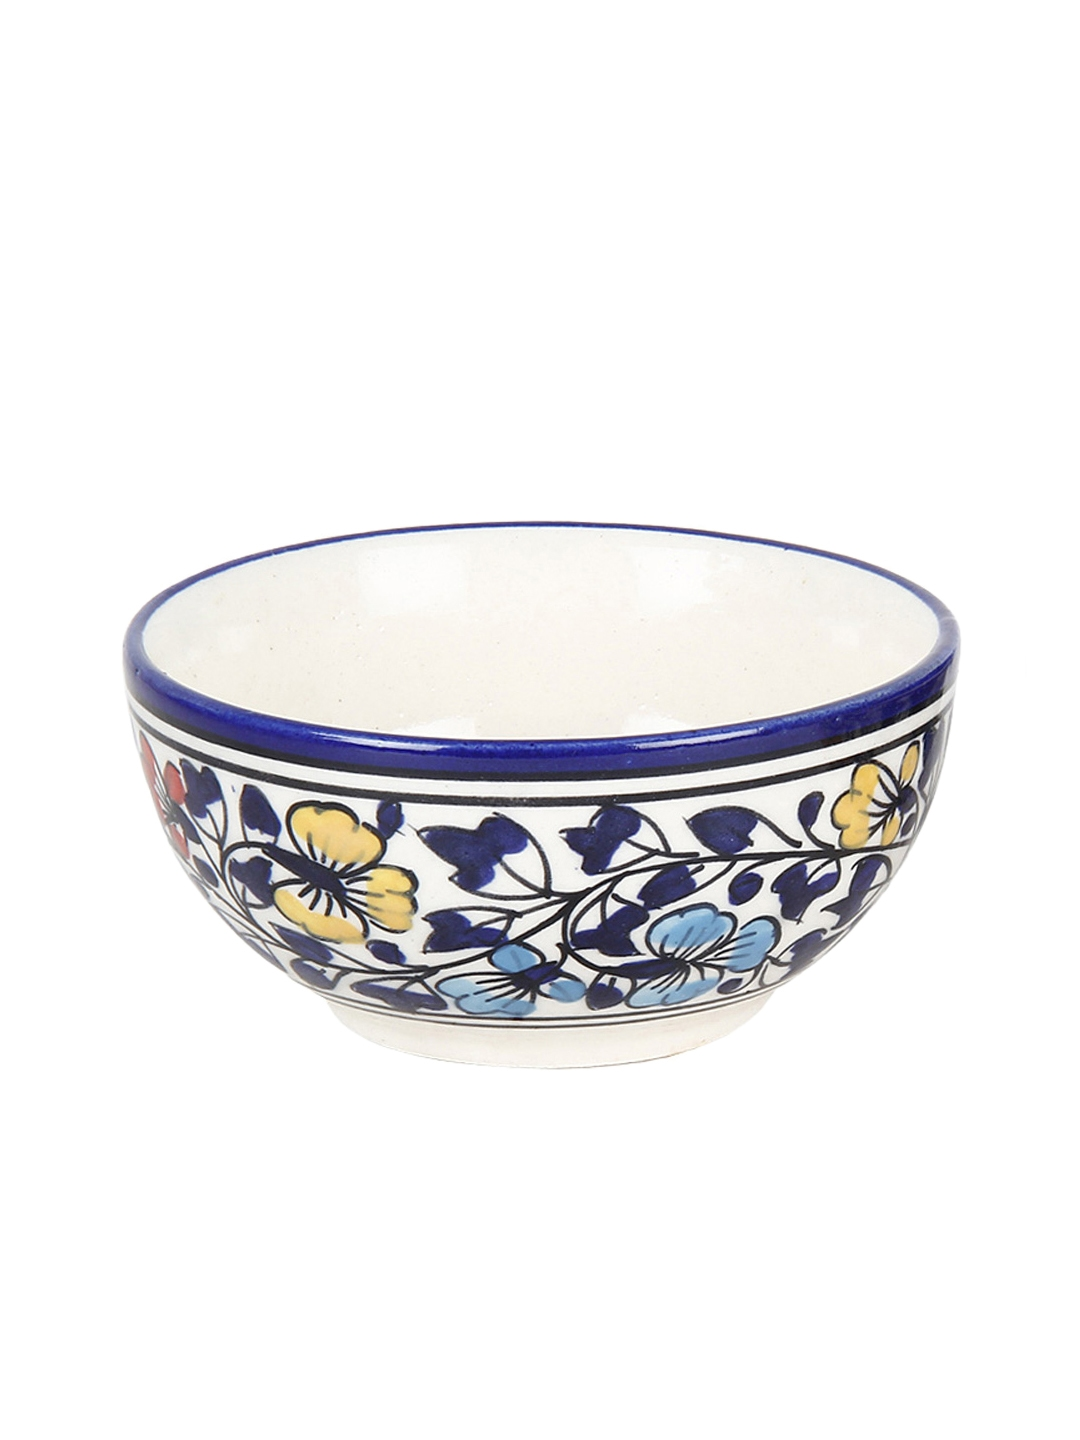 Buy Vareesha Set Of 2 Round Ceramic Serving Bowls With Cutlery